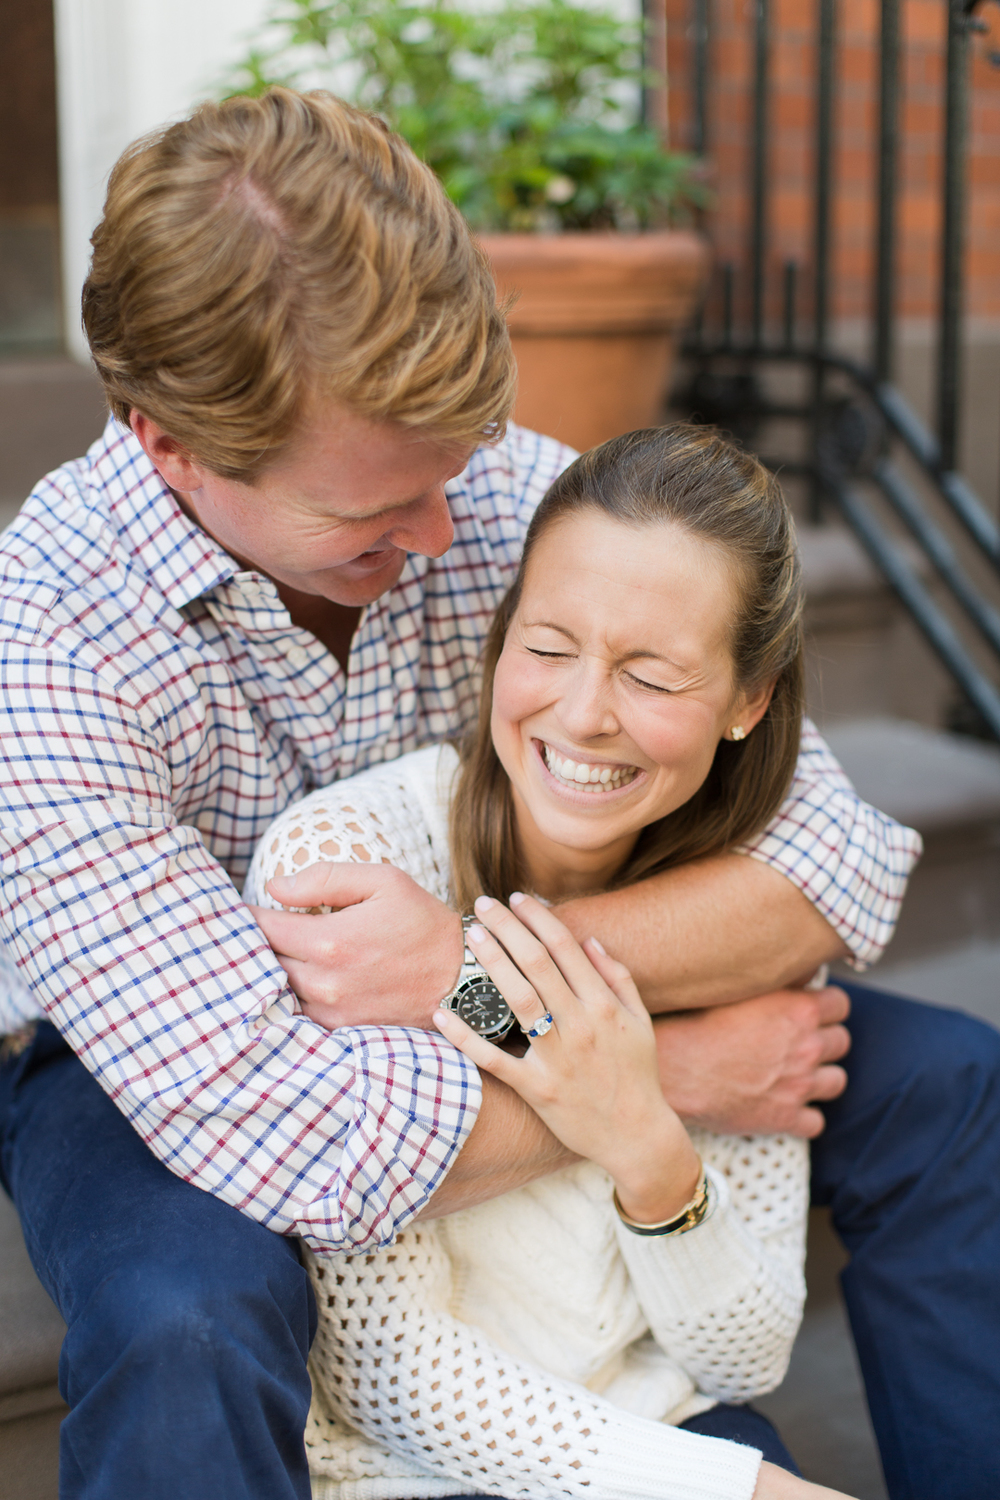 Melissa Kruse Photography - Megan & Tyler West Village Engagement Photos-62.jpg